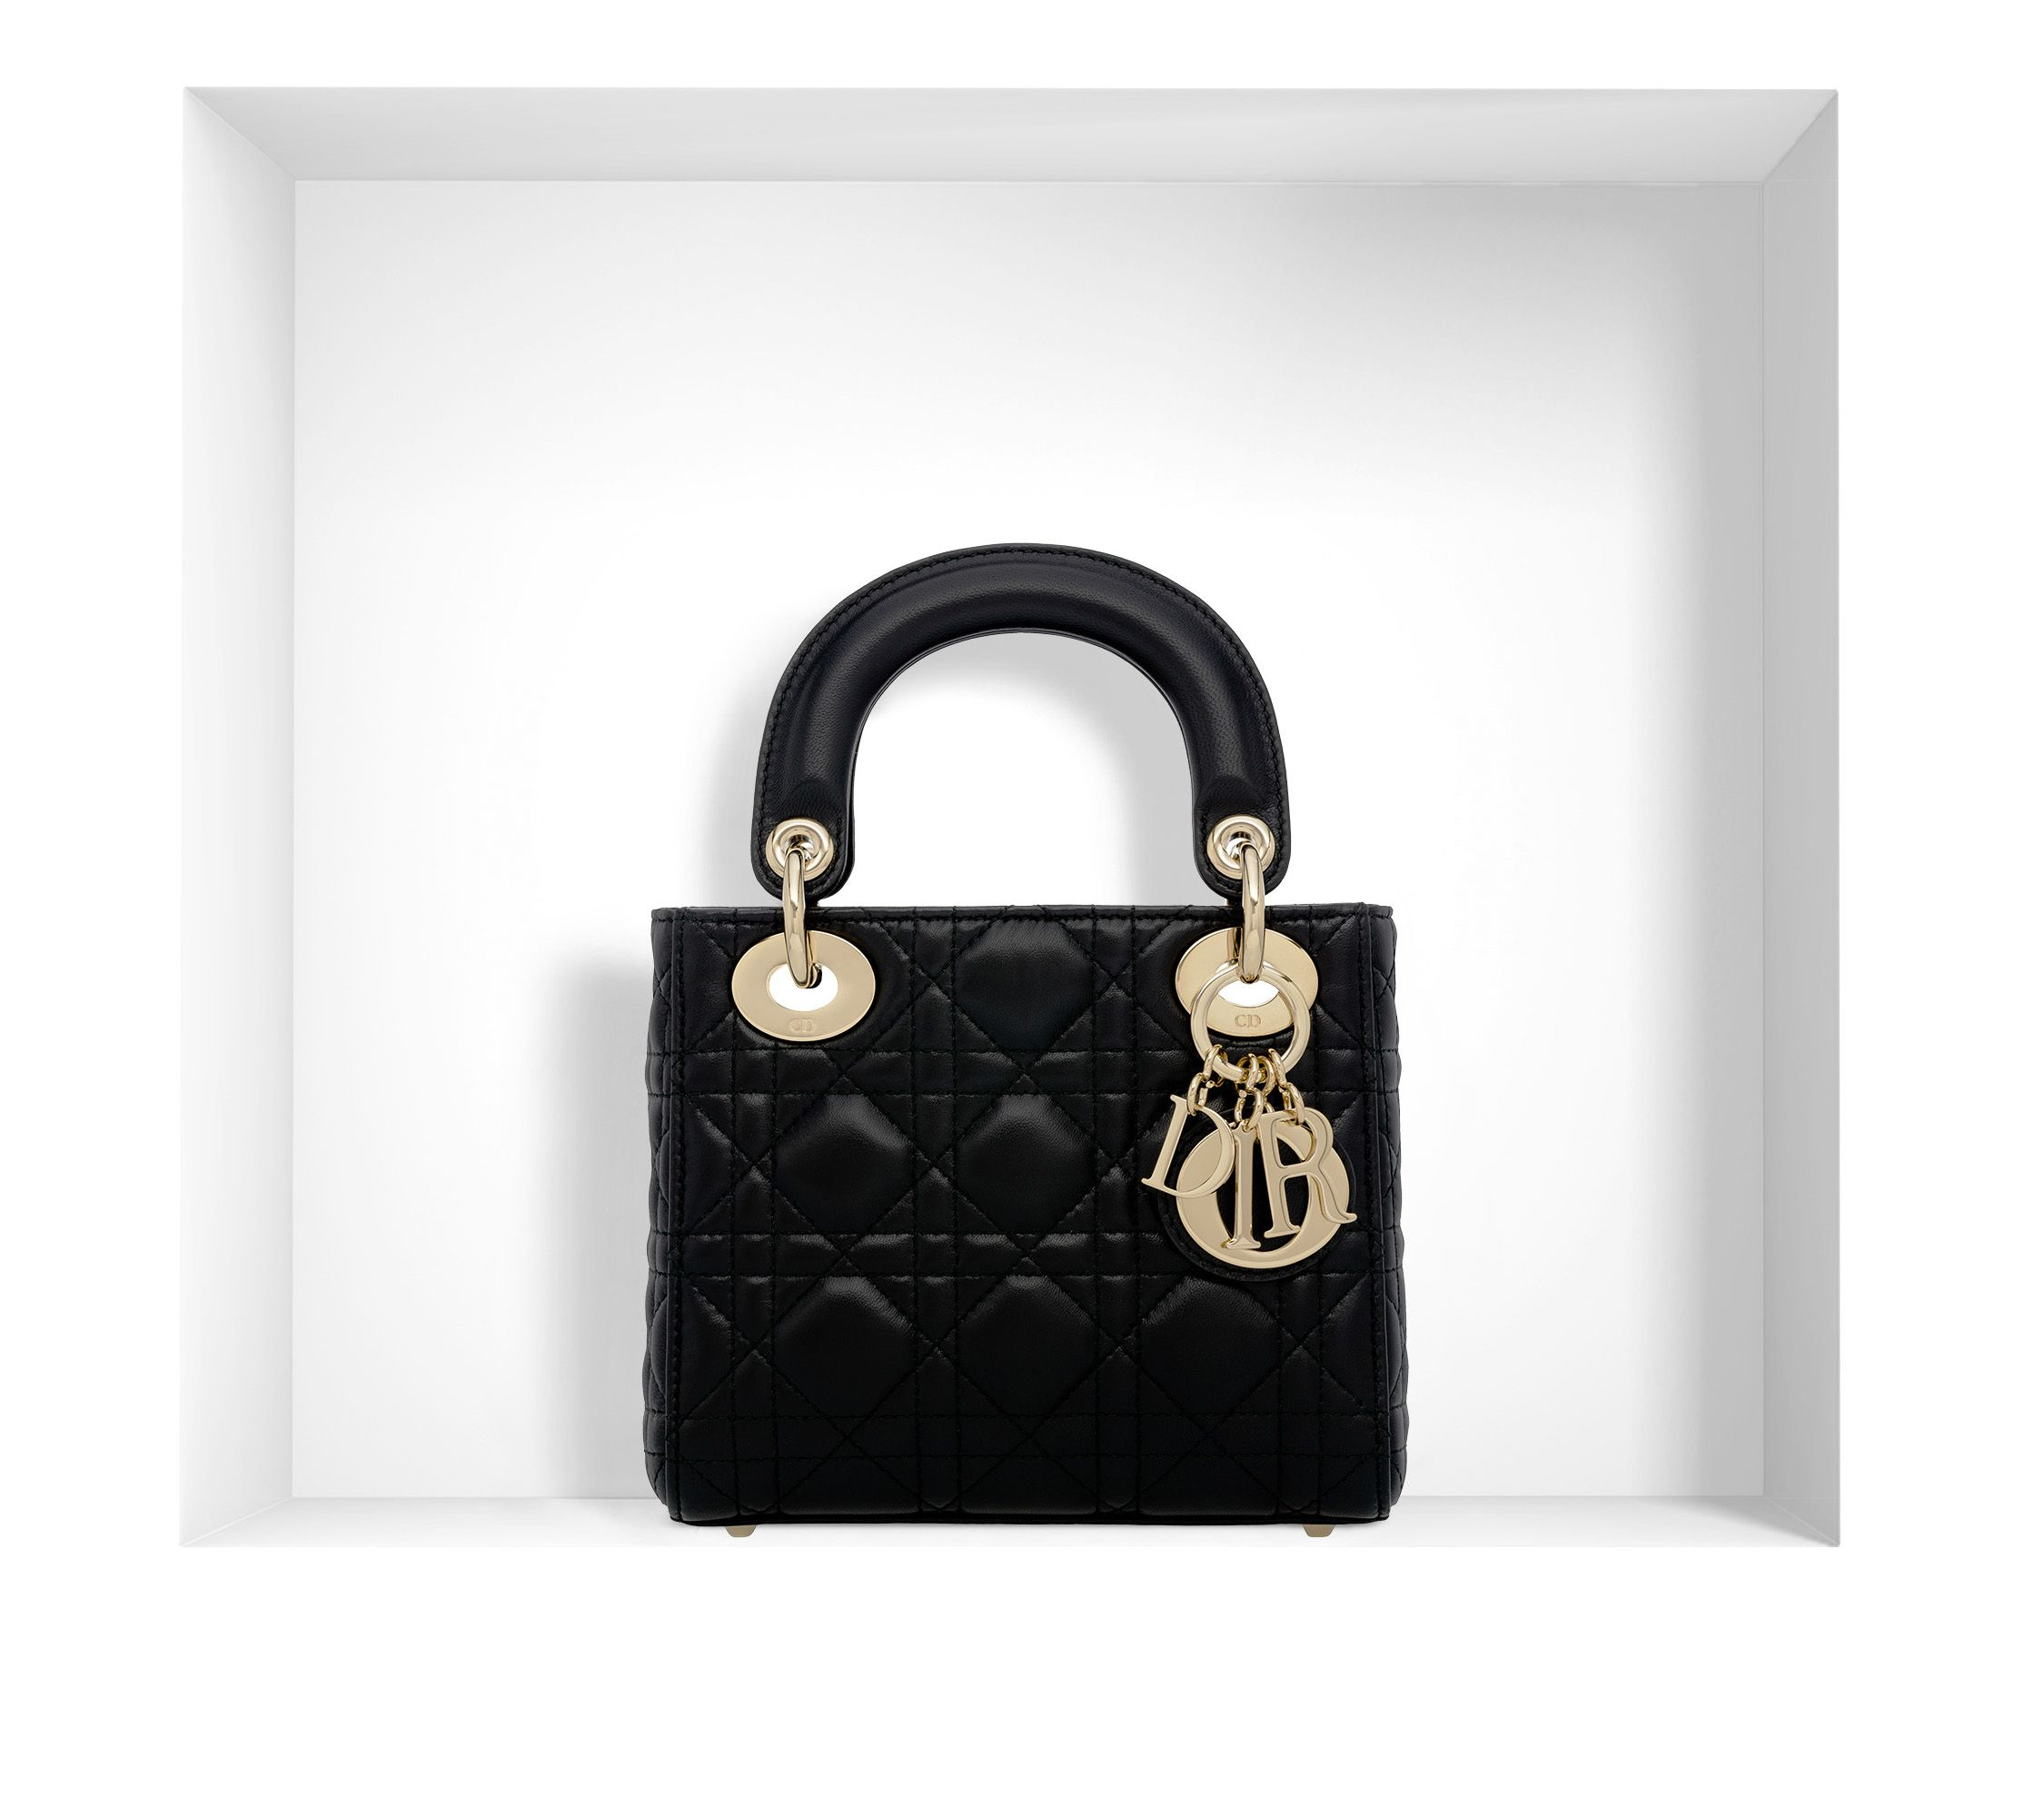 b22363a232a Mini Lady Dior lambskin bag | Handbag loves | Dior mini bag, Lady ...